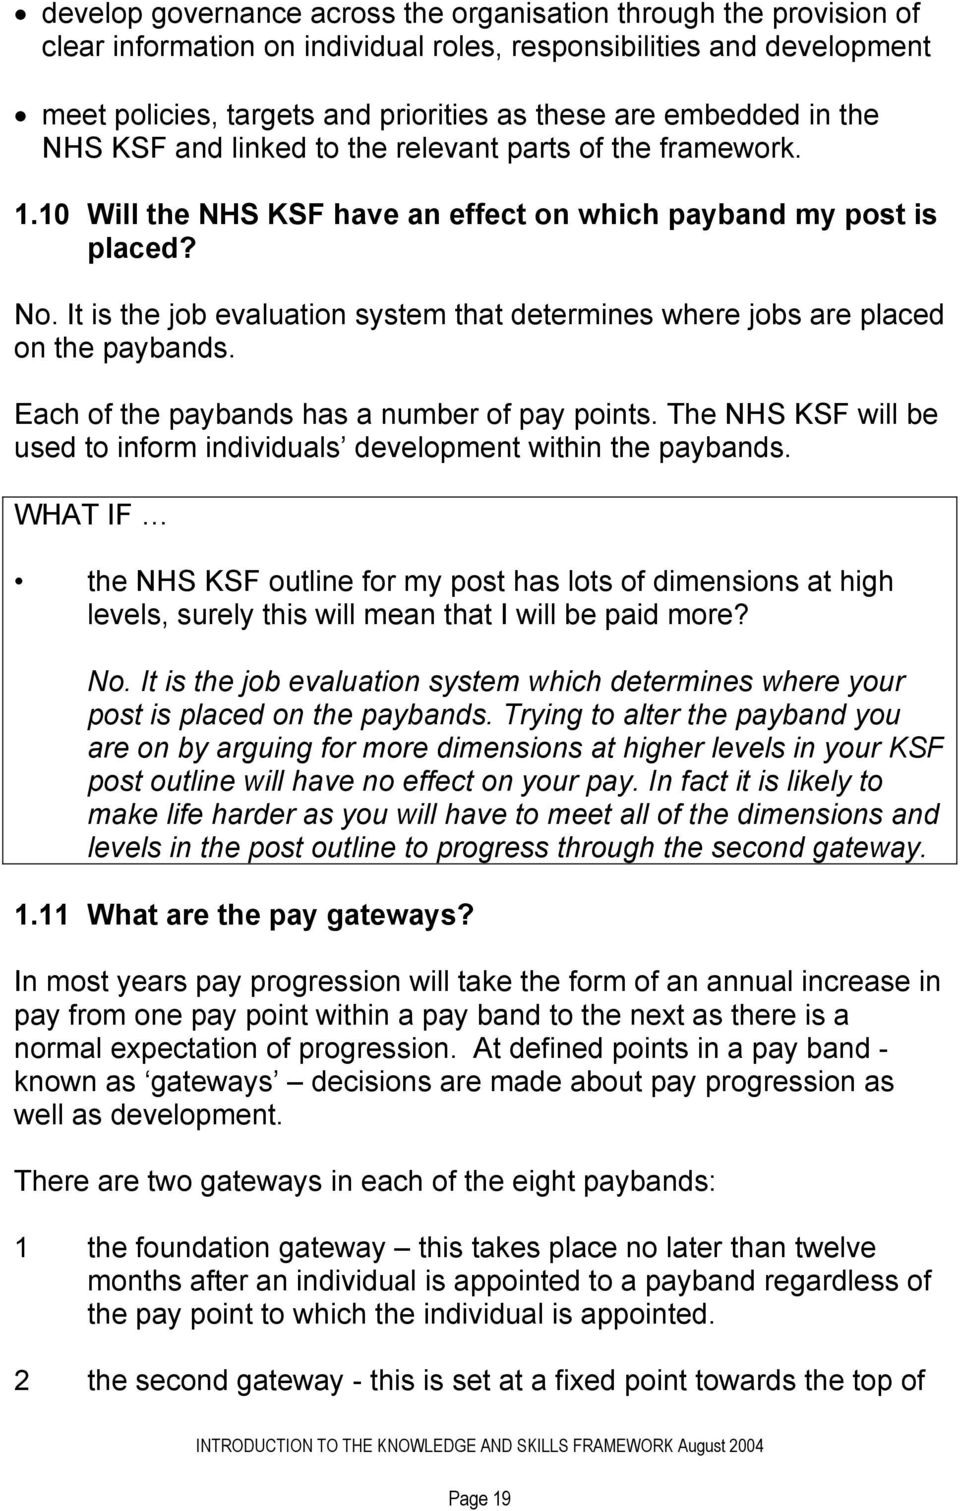 It is the job evaluation system that determines where jobs are placed on the paybands. Each of the paybands has a number of pay points.